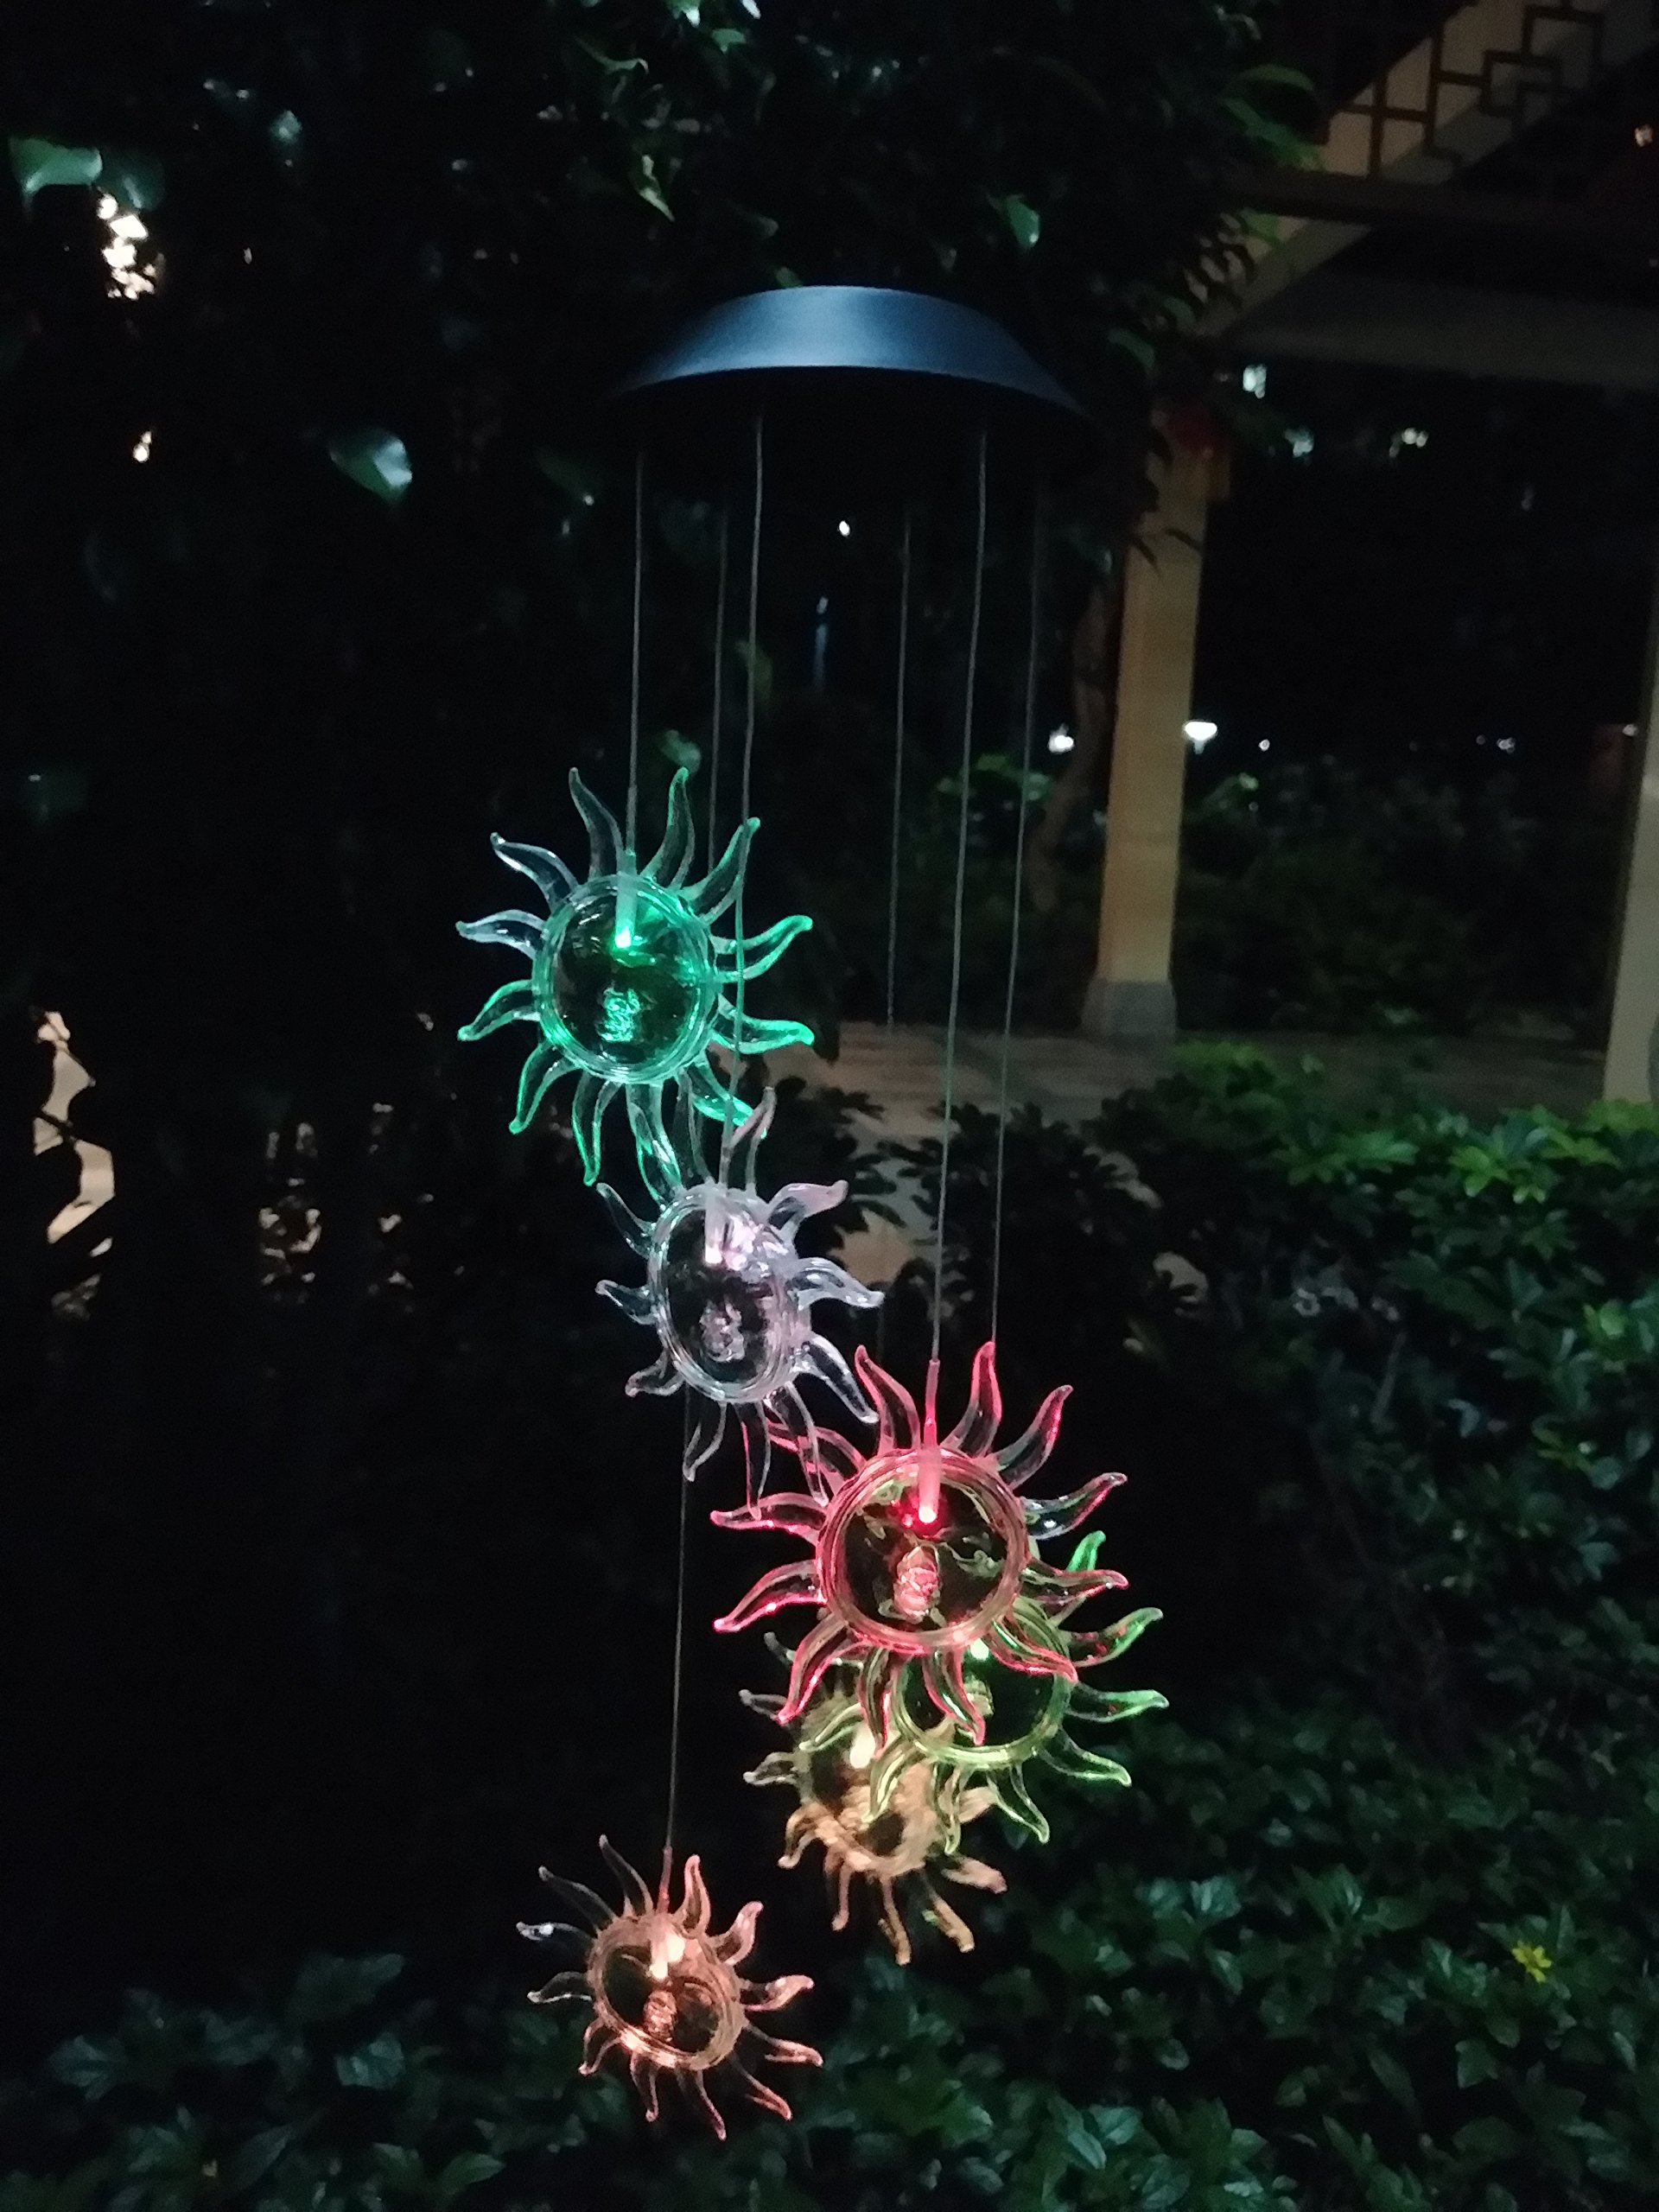 WiVison Wind Chime Summer Automatic Light Sensor Mobile Hanging Lamp Led Solar Powered Hanging Windbell Lights Outdoor Decor for Gift Home Party Balcony Porch Patio Garden Clear Sun Sunflower